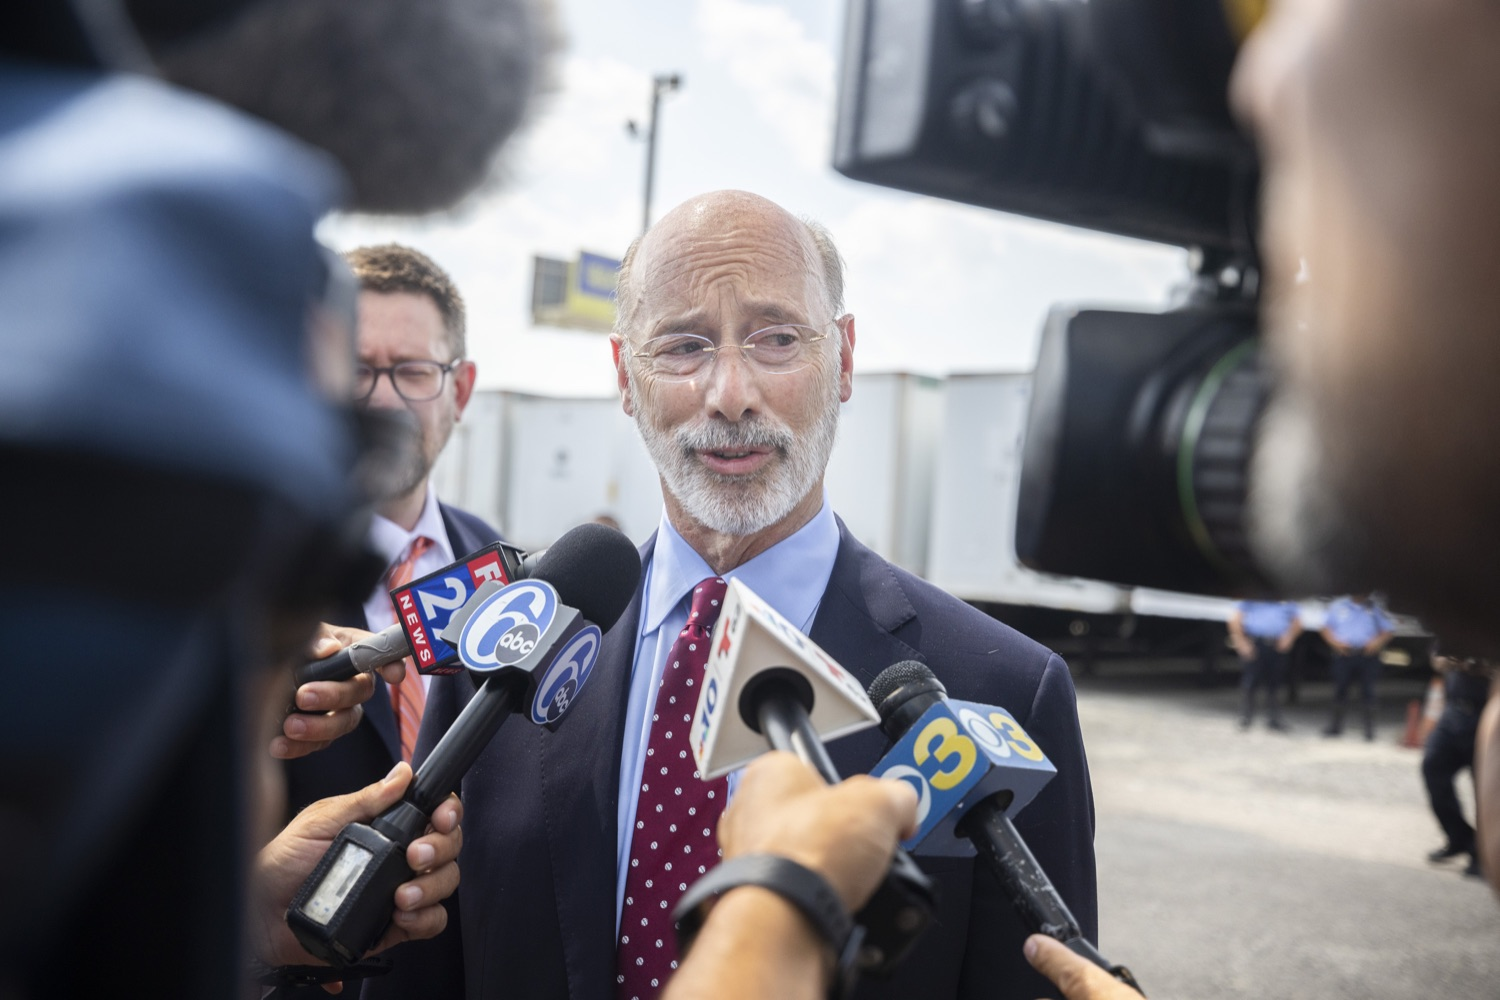 """<a href=""""https://filesource.wostreaming.net/commonwealthofpa/photo/18936_gov_taskforceone_dz_014.jpg"""" target=""""_blank"""">⇣Download Photo<br></a>Governor Tom Wolf thanked members of Pennsylvania-Task Force 1 (PA- TF1), who returned today to Philadelphia after spending two weeks assisting with search and rescue efforts at the site of the recent deadly building collapse in Surfside, Florida.  Philadelphia, Pa.  July 16, 2021"""